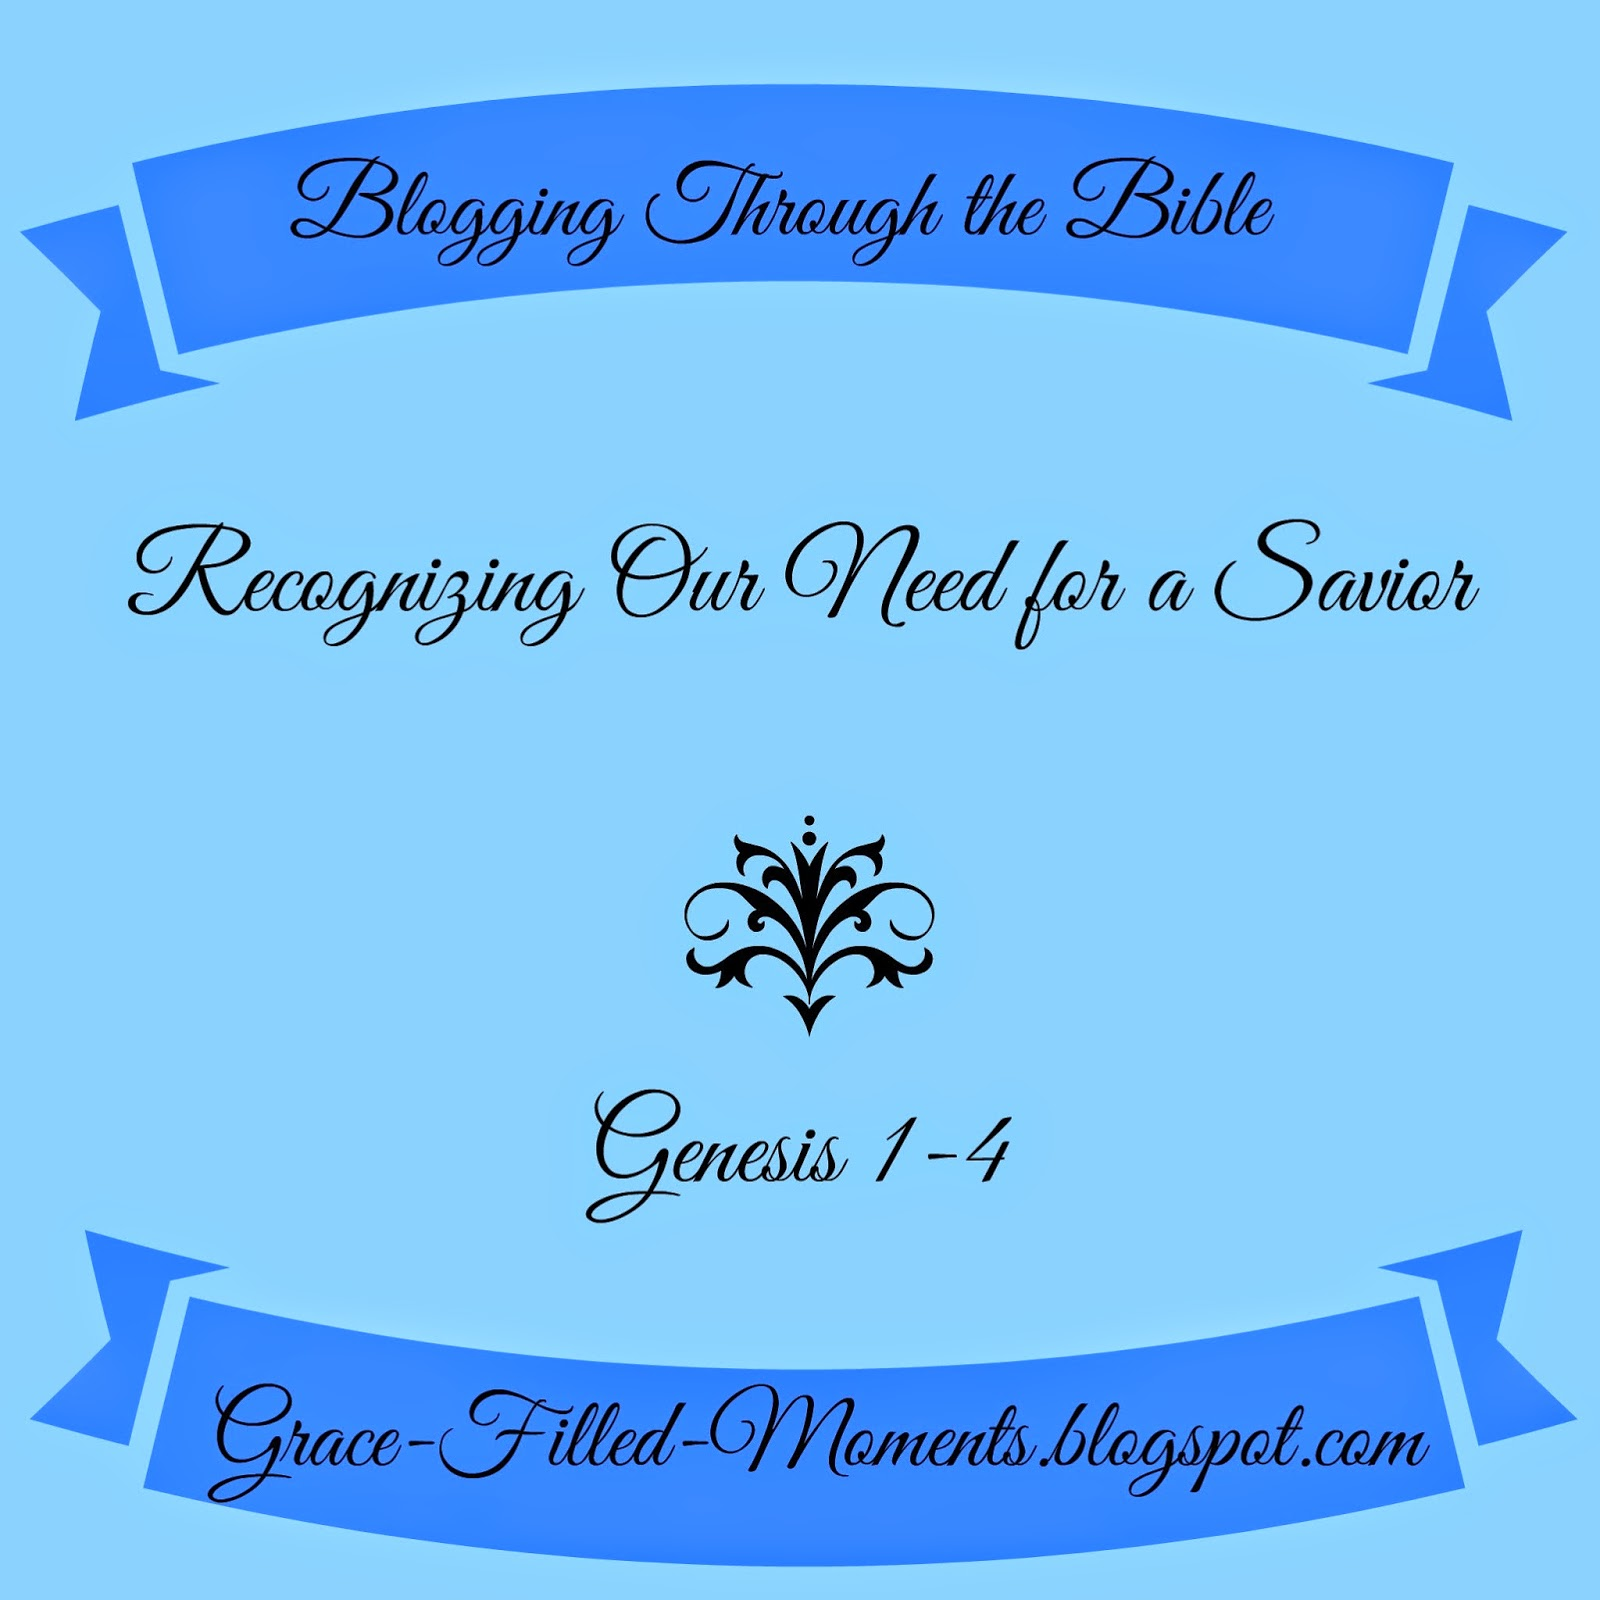 Grace-Filled-Moments